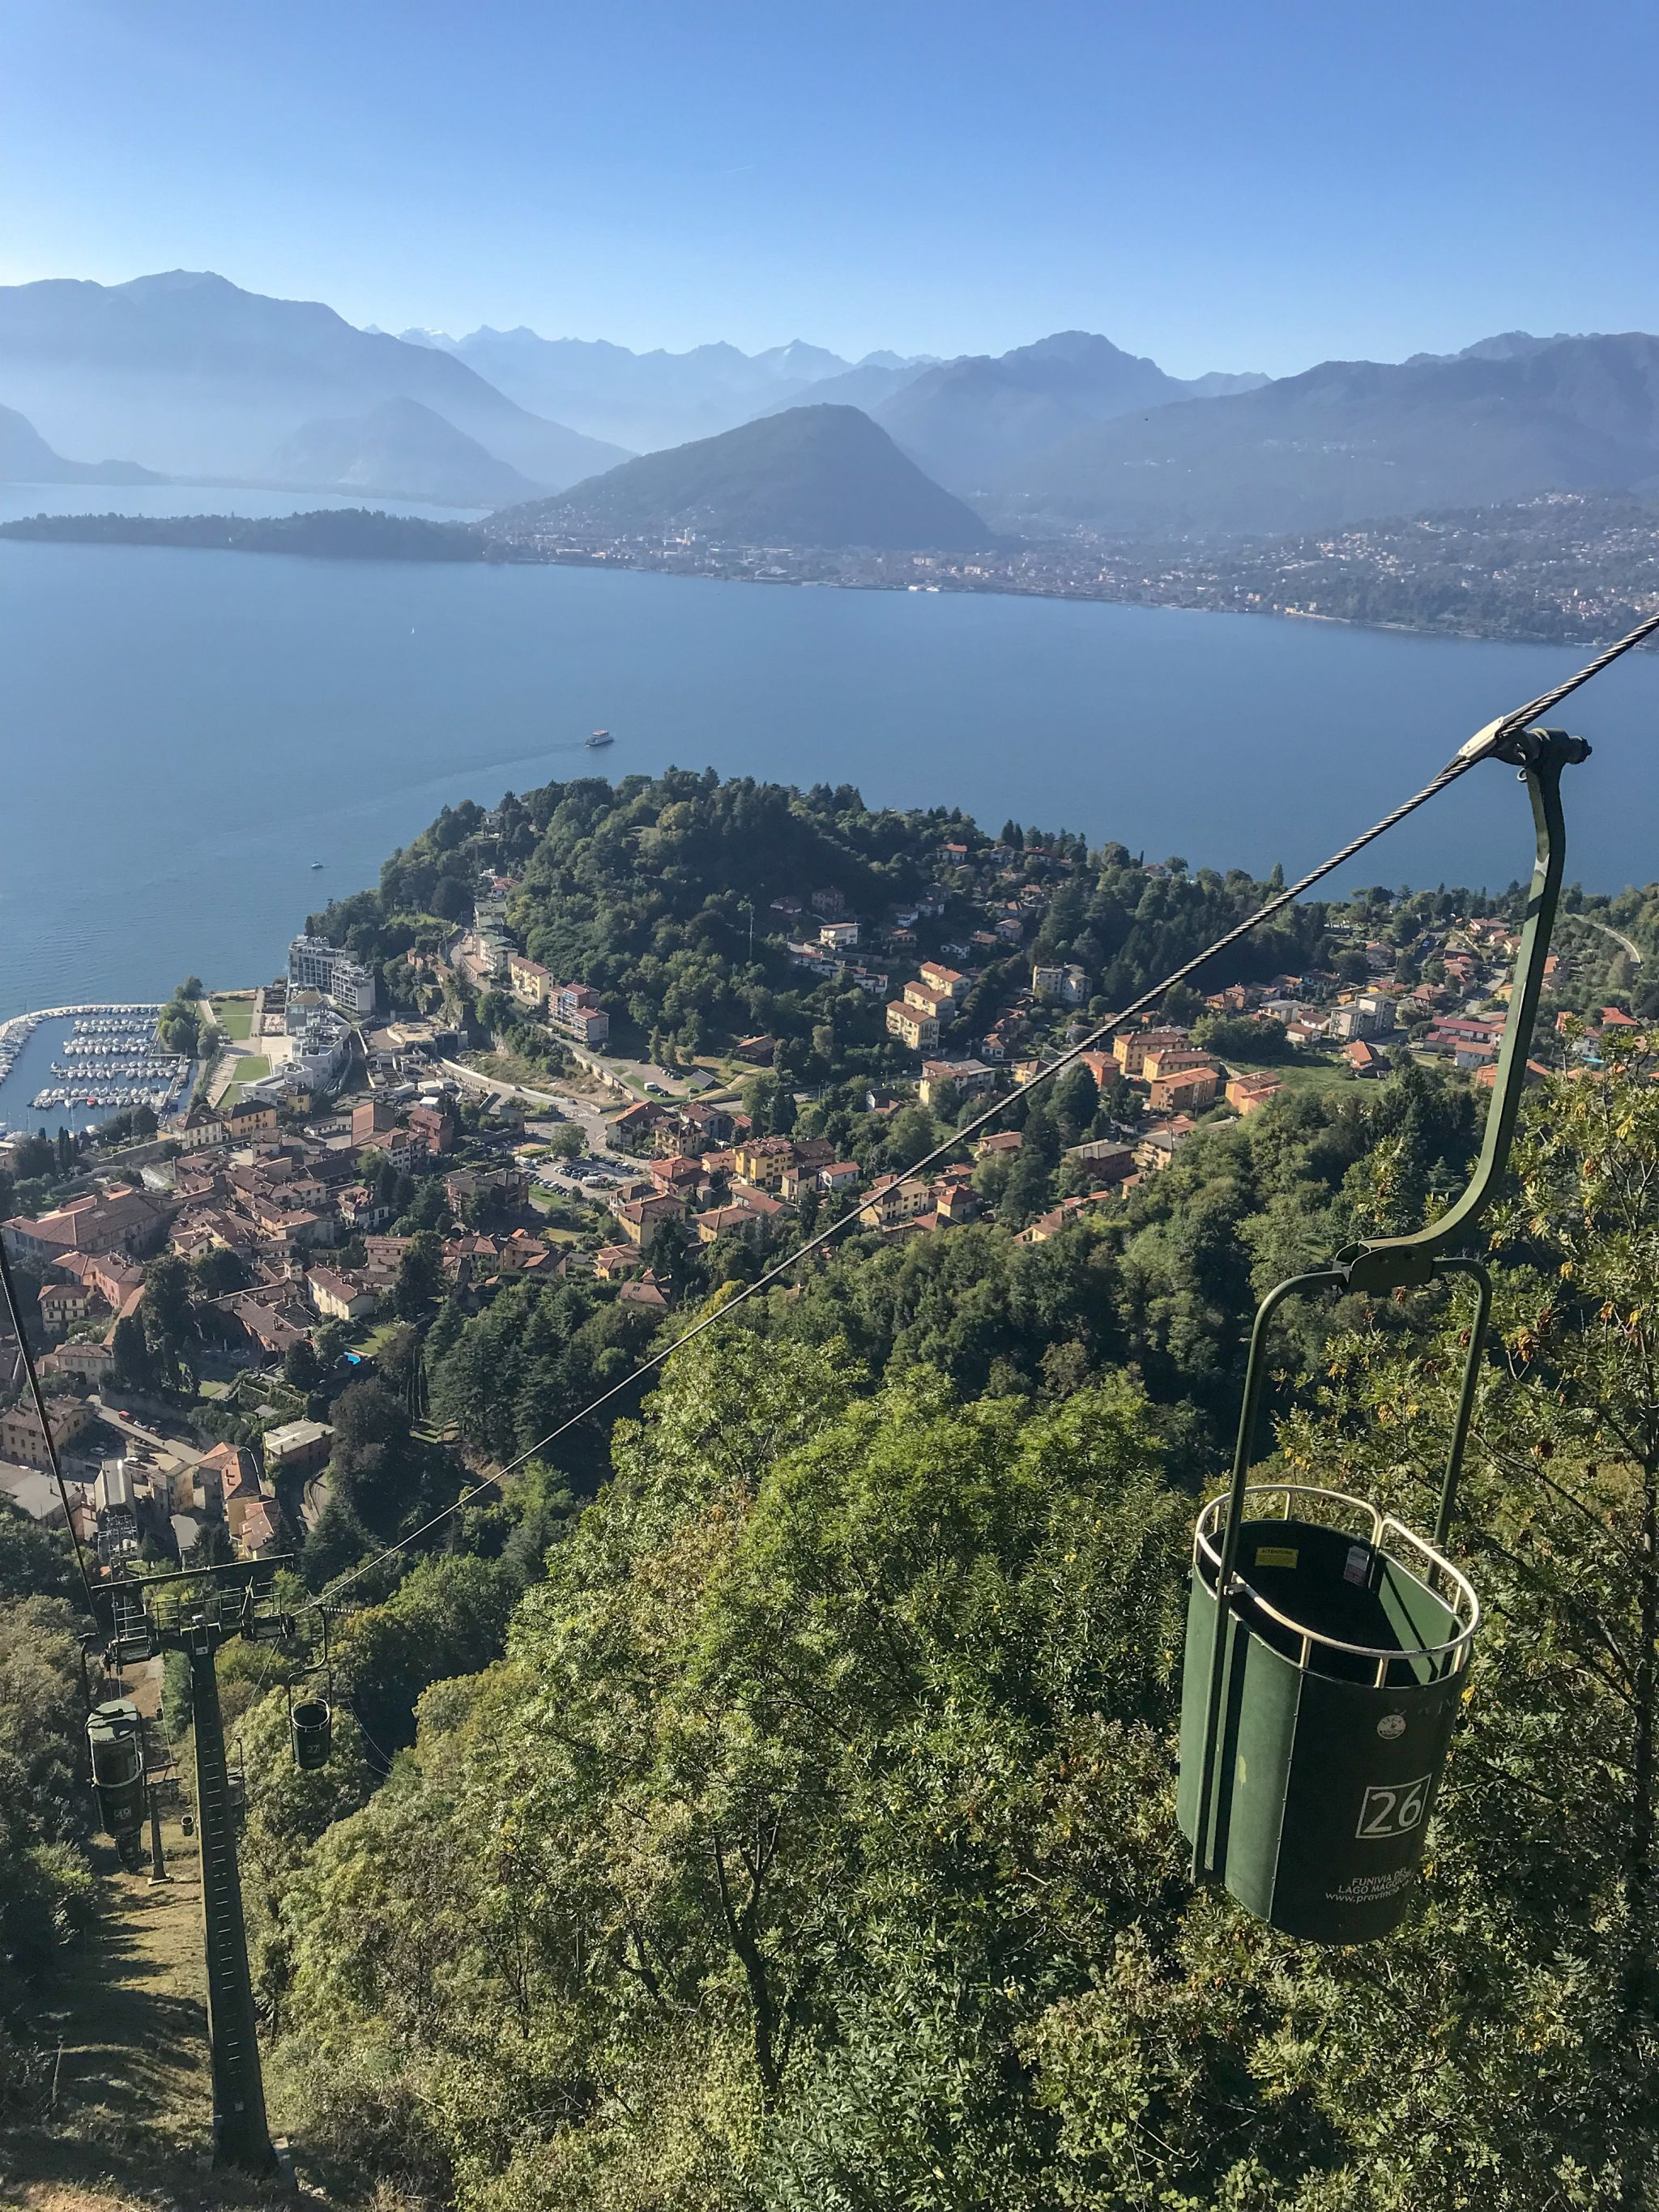 braving the open-top bucket lift cable cars of Lake Maggiore